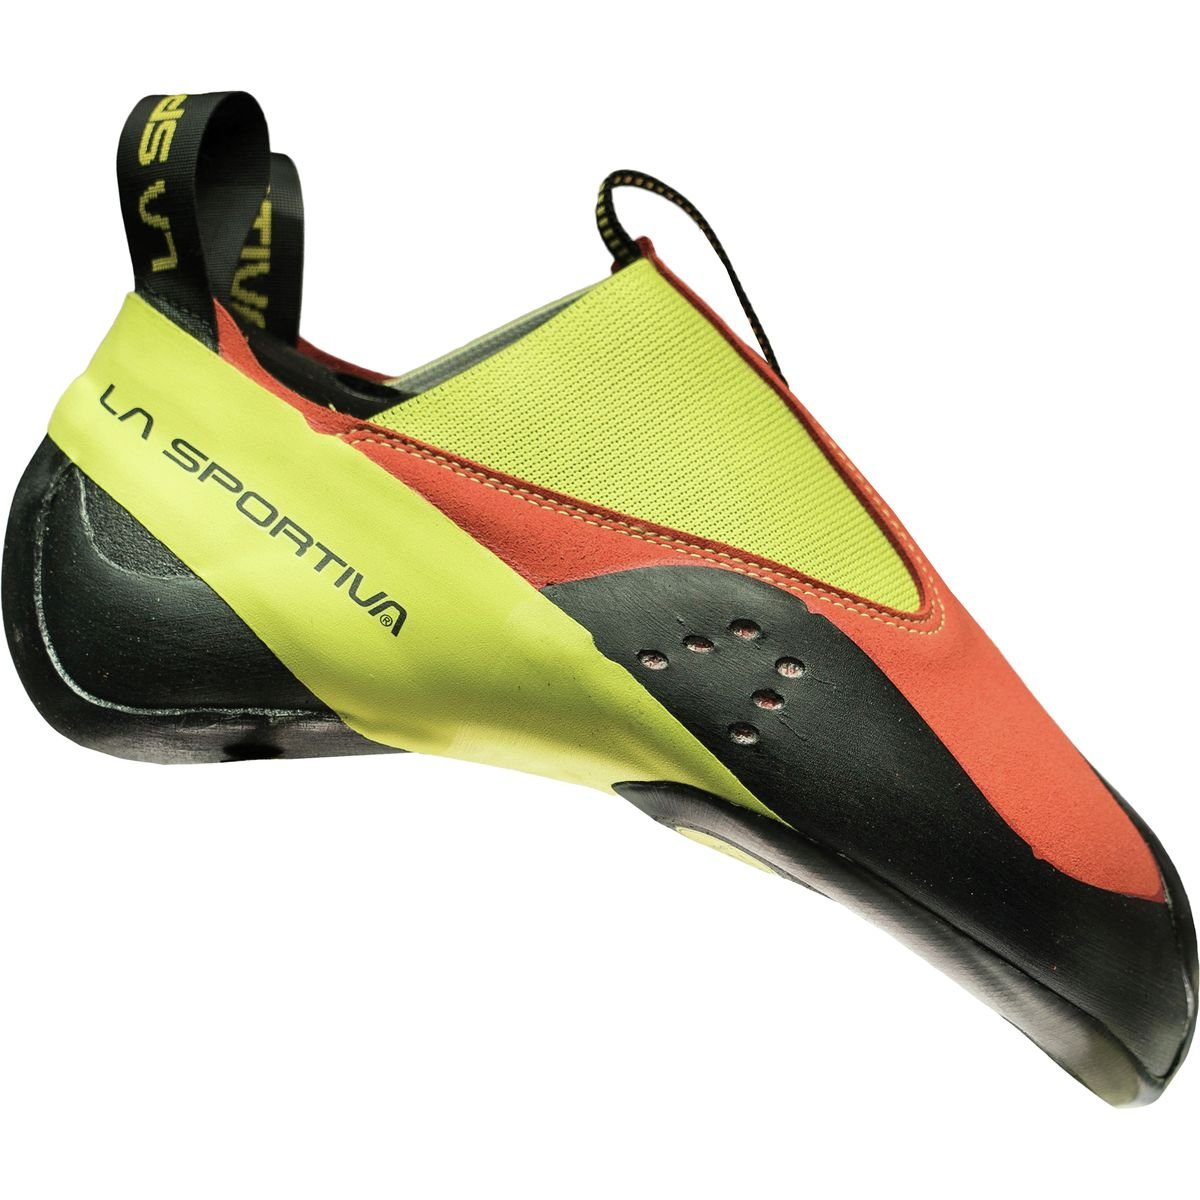 La Sportiva Maverink Climbing Shoe - Men's B01K7UXMSY 32 (US Men's 1) D - Medium|Flame/Sulphur